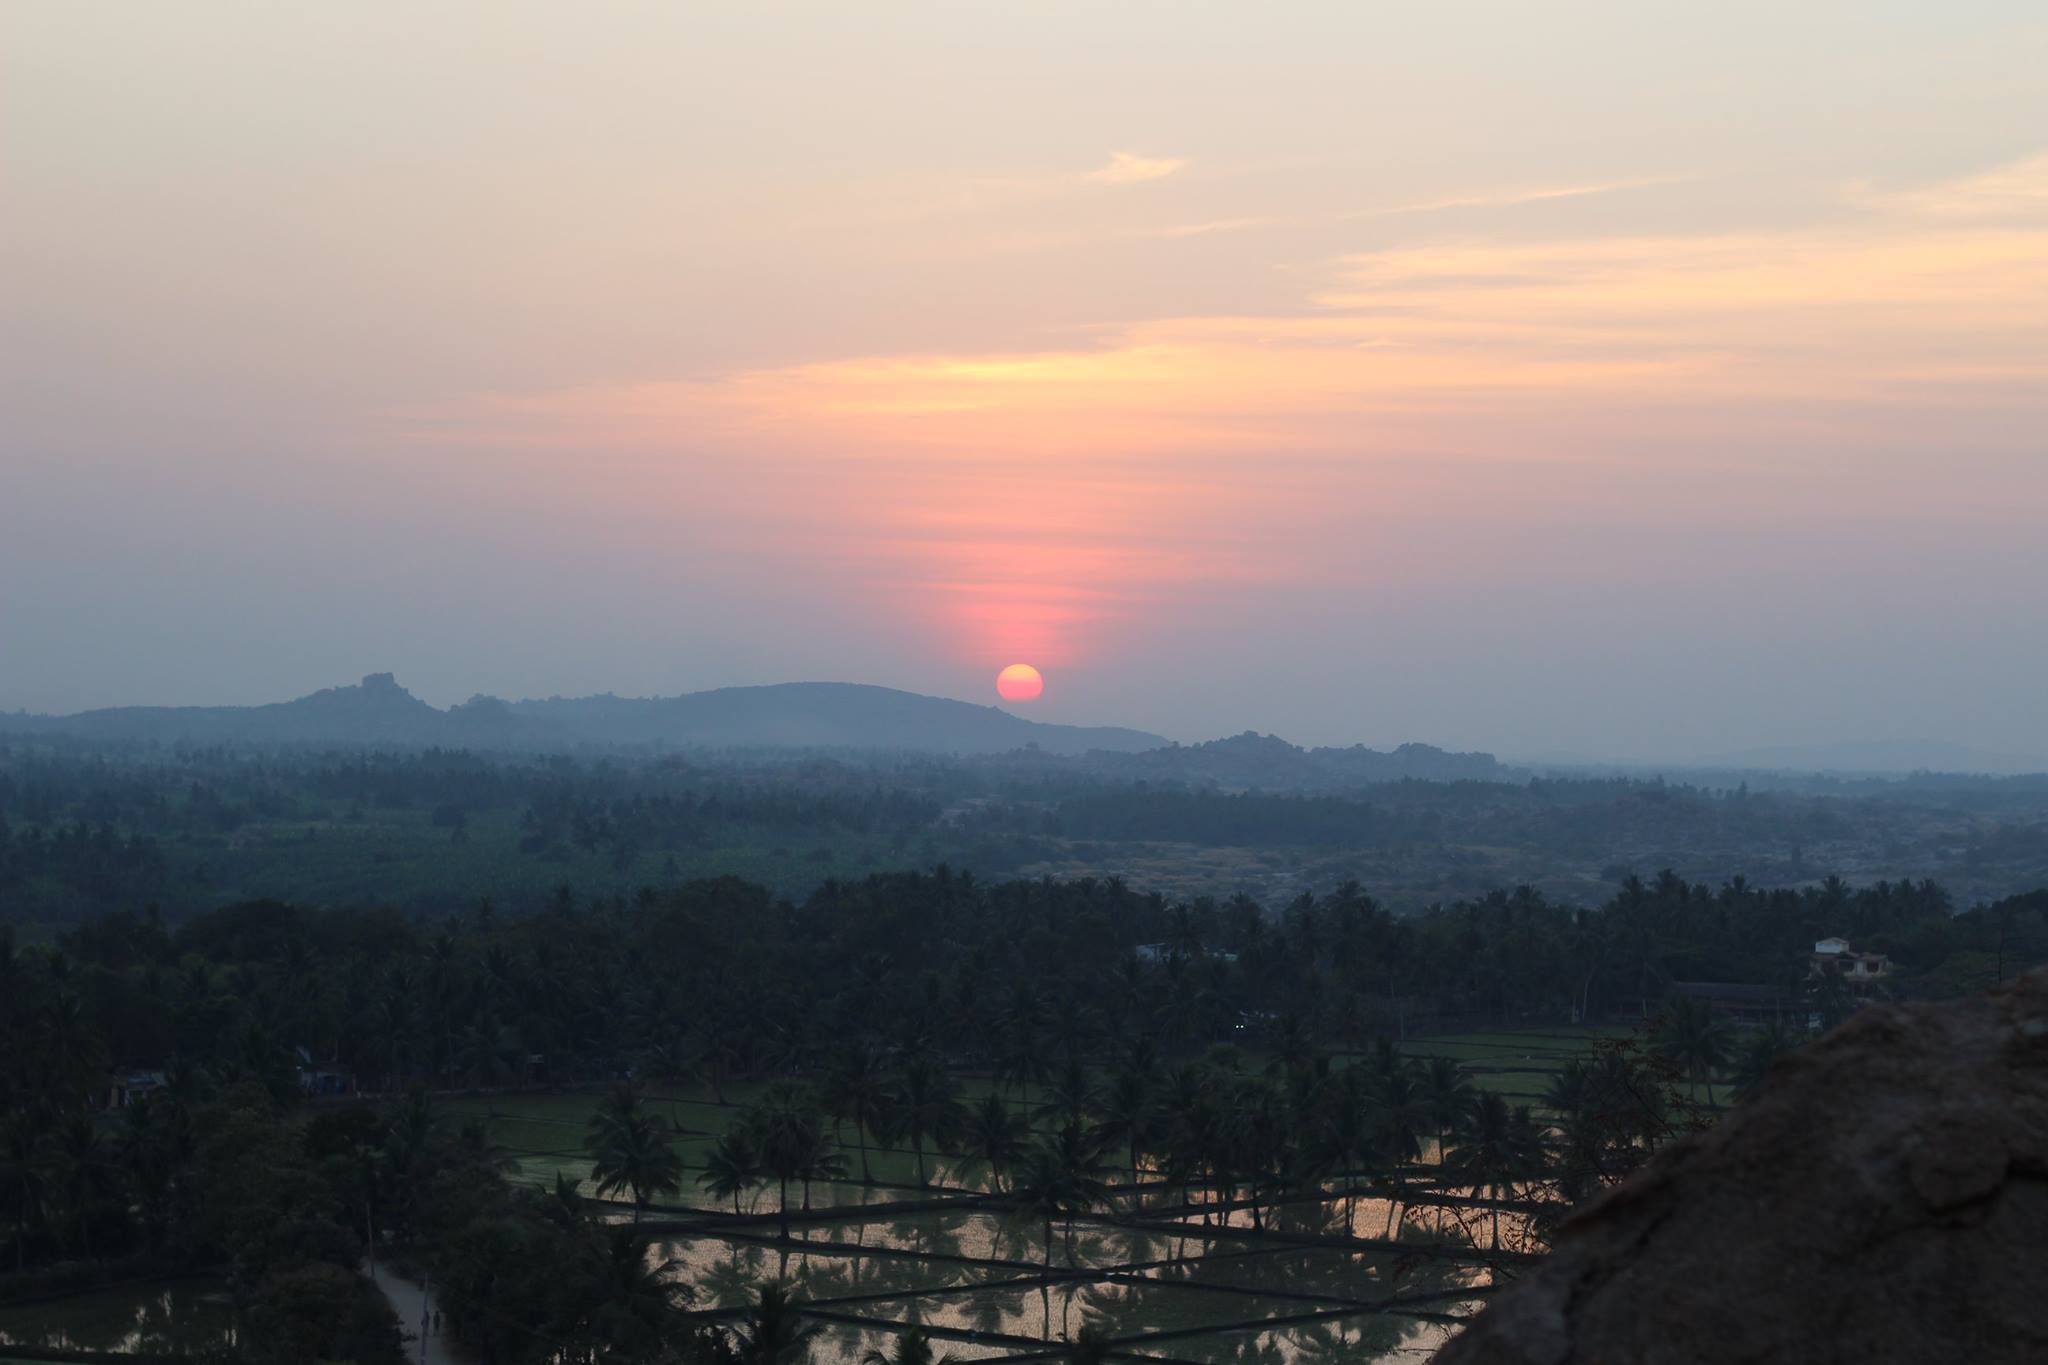 Sunsets in India seem to be all that more special